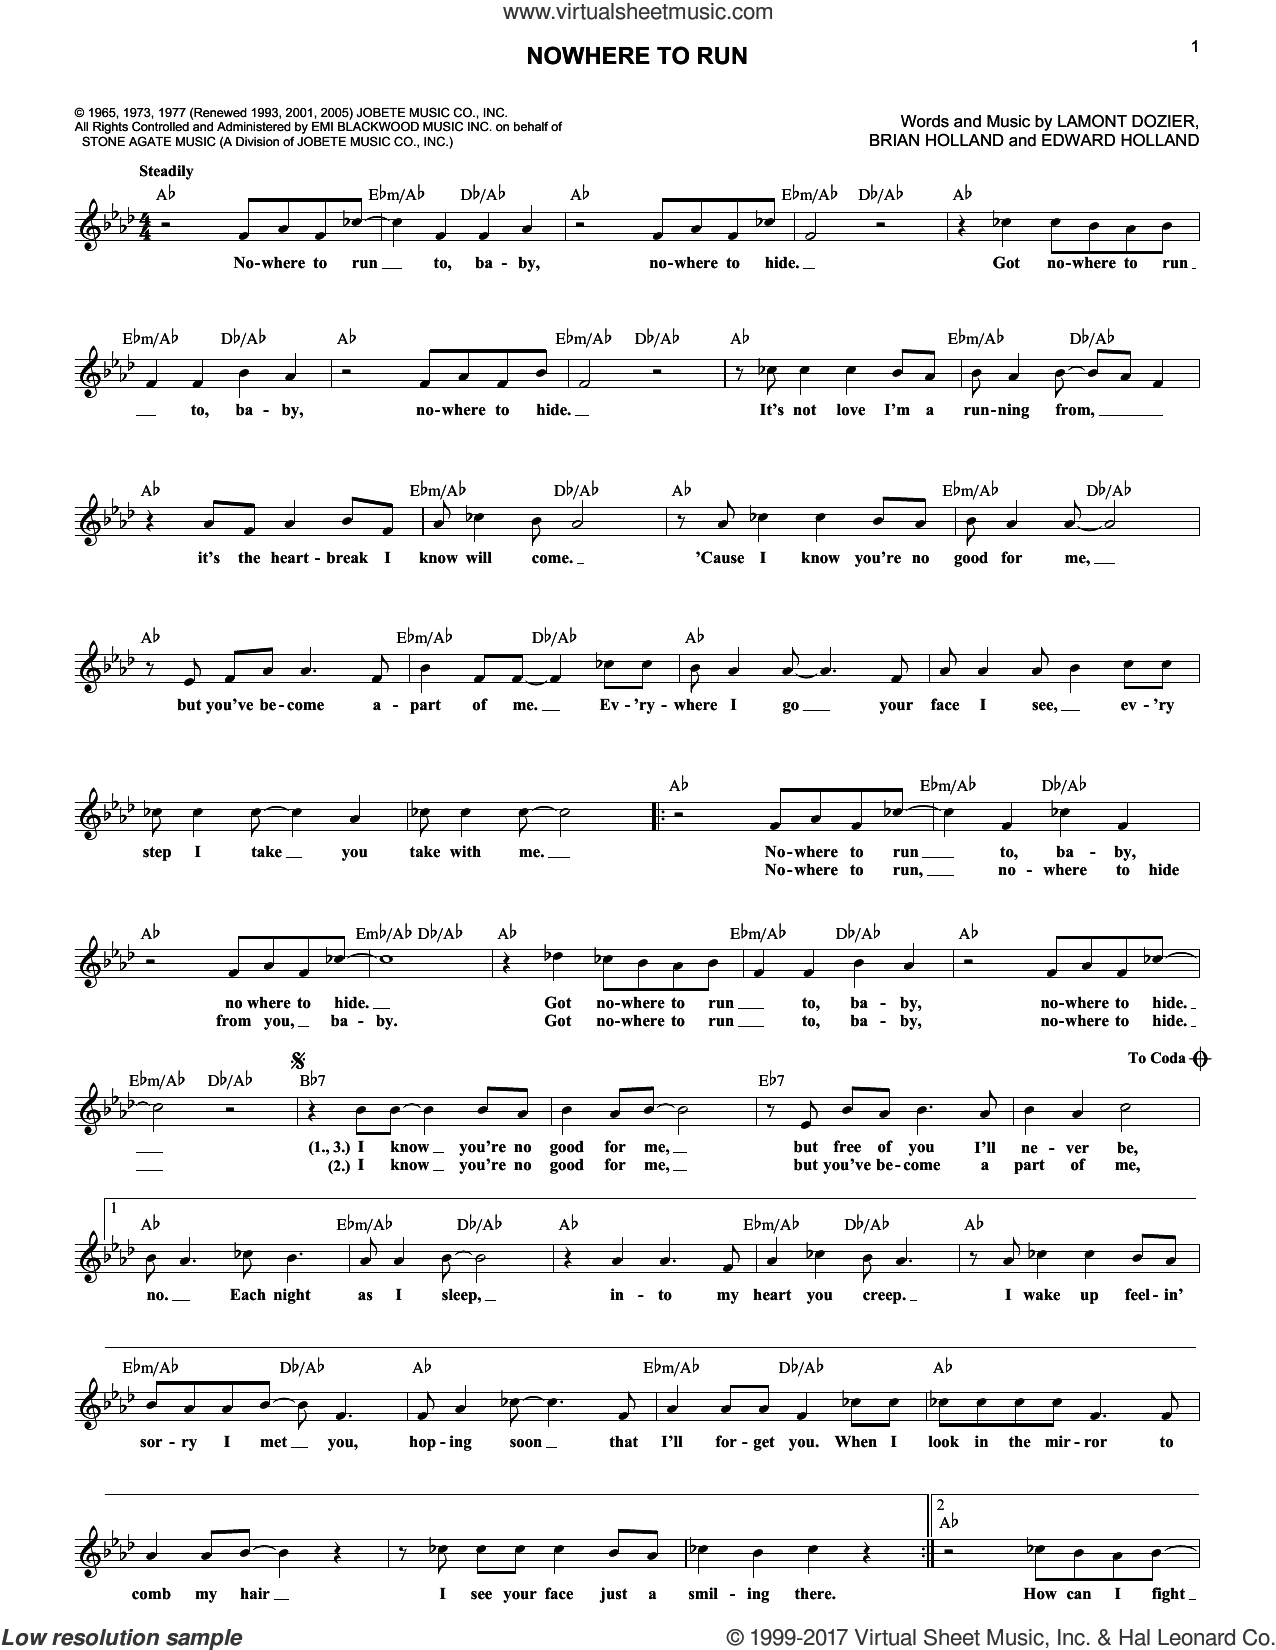 Nowhere To Run sheet music for voice and other instruments (fake book) by Martha & The Vandellas, The Isley Brothers, Brian Holland, Eddie Holland and Lamont Dozier, intermediate skill level